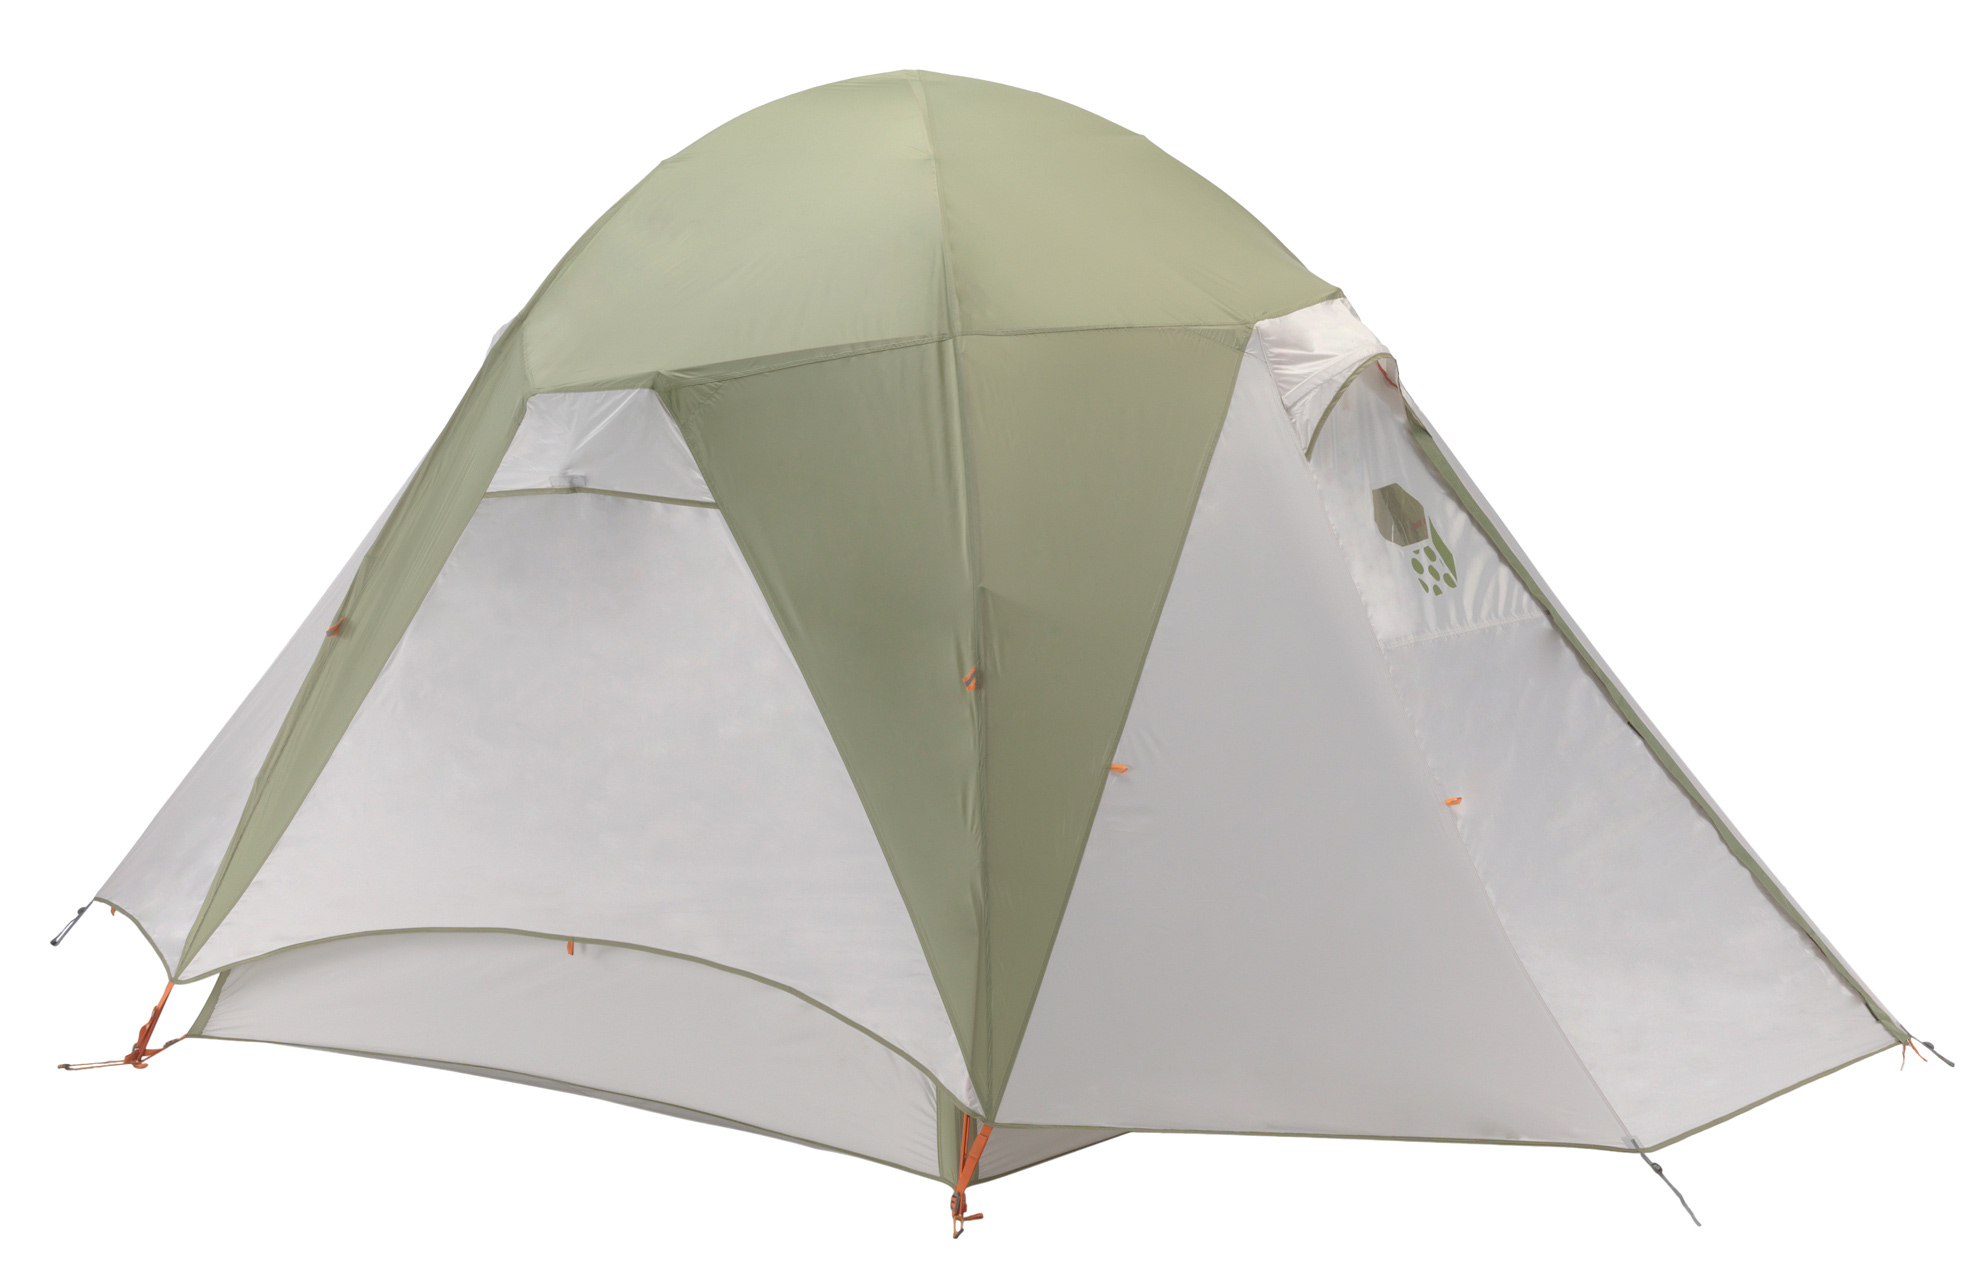 "Camp and Hike Basecamp in comfort with this spacious two-door design. Four-hub pole structure sets up quickly and easily, and provides plenty of headroom, while reflective starter points and guy-out loops make even late night set-up a breeze. Vestibule design prevents rain and wet from entering the tent's inner shelter. Dual vestibules provide ample storage for your gear.Key Features of the Mountain Hardwear Corners 4 Tent: Vents positioned on all four sides of the fly keep the interior cool Unique pole structure with 4 hubs at corners maximizes interior volume and makes set up extremely easy Vestibule design creates a dry storage area and prevents water from reaching the tent floor Proprietary Evolution Tension Arch™ stabilizes tent Reflective starter point and guy-out loops for easy set-up at night Clear SVX window is UV-resistant, providing a view and extra light ""Pitch Light™ configuration allows user to set up a superlight shelter using only the tent fly, poles and footprint (sold separately)"" Capacity 4 Minimum Weight 14 lb. 7 oz. / 6.53 kg. Packed Weight 15 lb. 5 oz. / 6.93 kg. Tent Floor 150D Polyester Oxford 3000mm PU, DWR , FR Poles 6061 PF Canopy 20D Nylon Knit Mesh;68D Polyester Ripstop DWR Reinforcement 75D Polyester Taffeta 1500mm PU Fly 75D Polyester Taffeta 1500mm PU Floor Area 64 sq. ft. / 5.9 m2 Number Of Doors 2 Number Of Poles 2 Number Of Vestibules 2 Vestibule Area 22 sq. ft. 2.0 m2 / 14 sq. ft. 1.3 m2 Interior Height 83"" / 211 cm Packed Diameter 11 in / 28 cm Packed Length 34 in / 86 cm - $399.95"